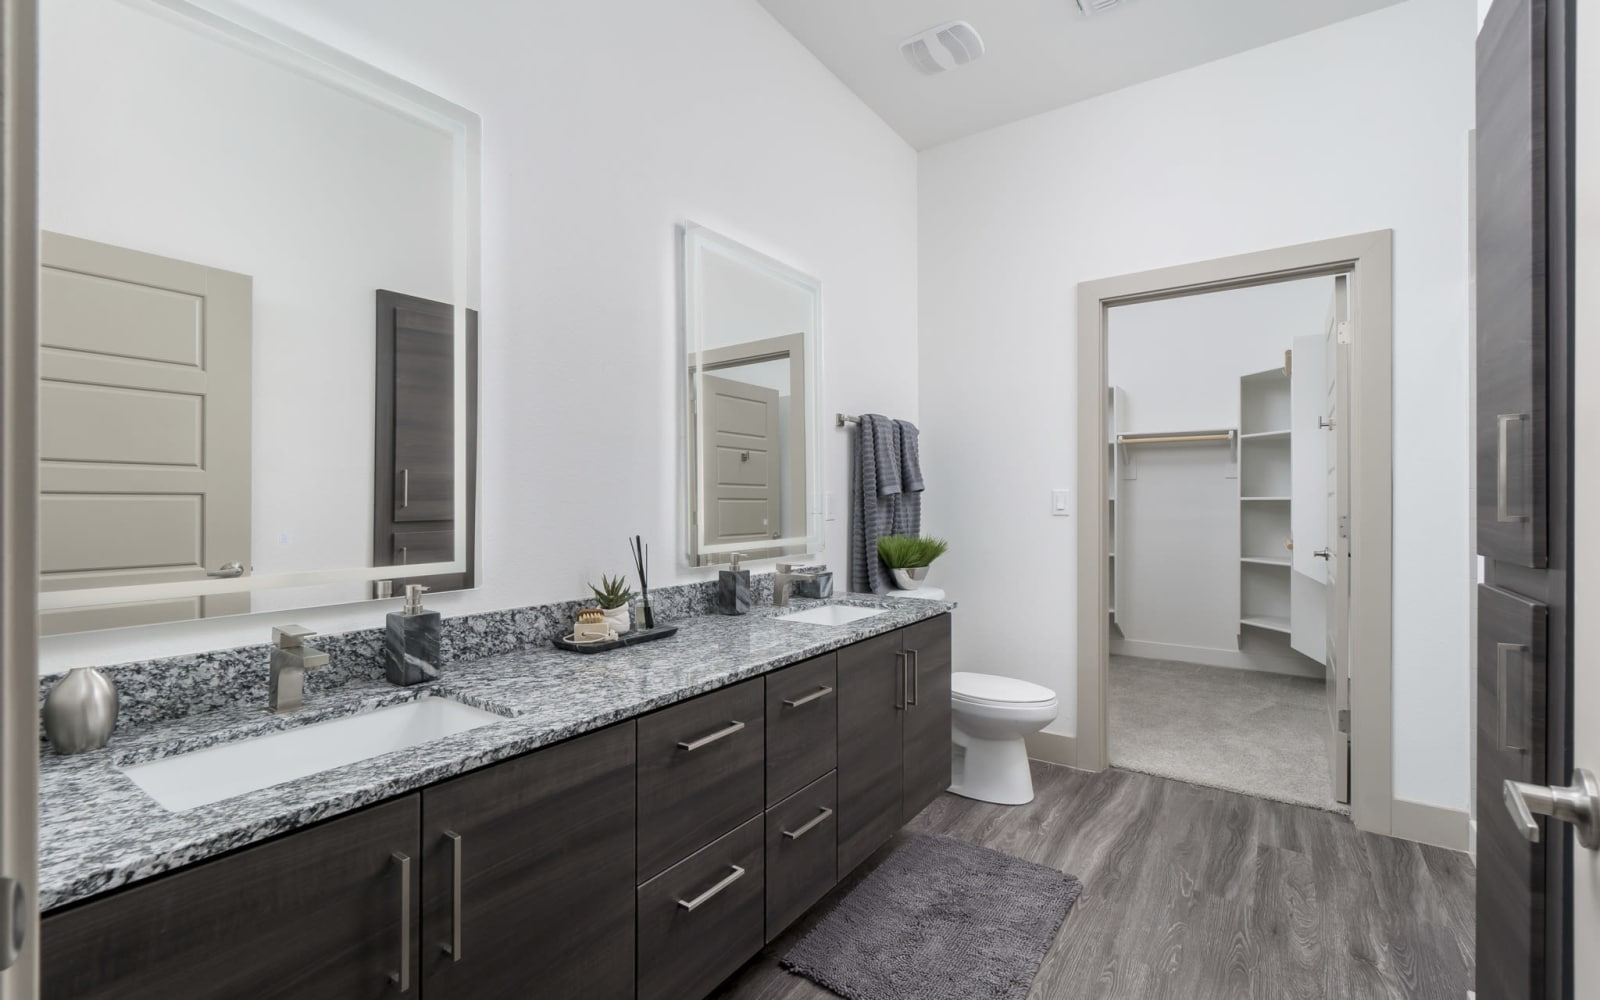 Bathroom leading to the walk-in closet at The District at Scottsdale in Scottsdale, Arizona